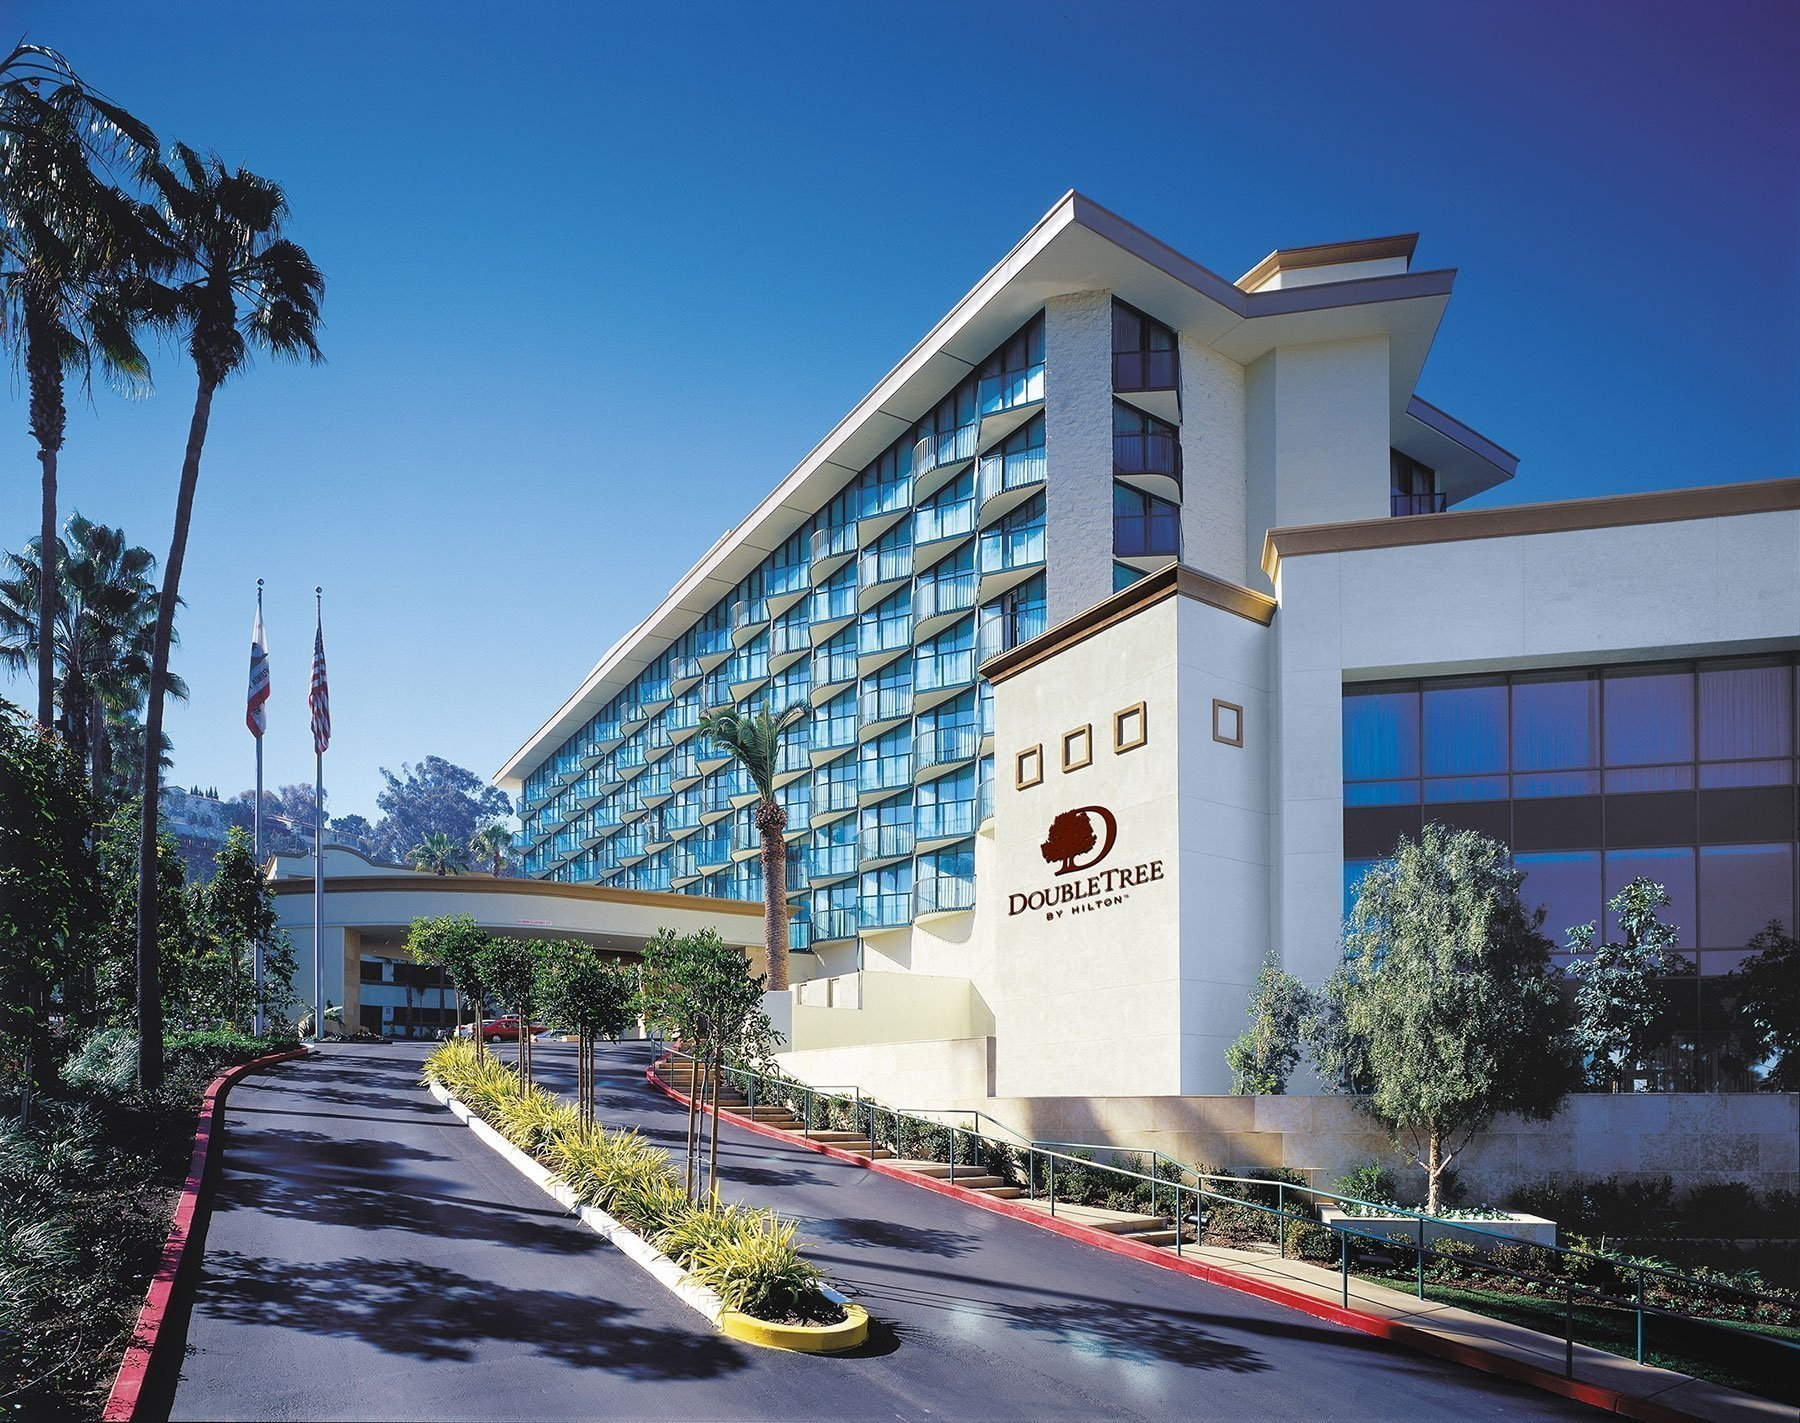 The Doubletree Hotel In Mission Valley S For More Than 49 Million San Go Union Tribune